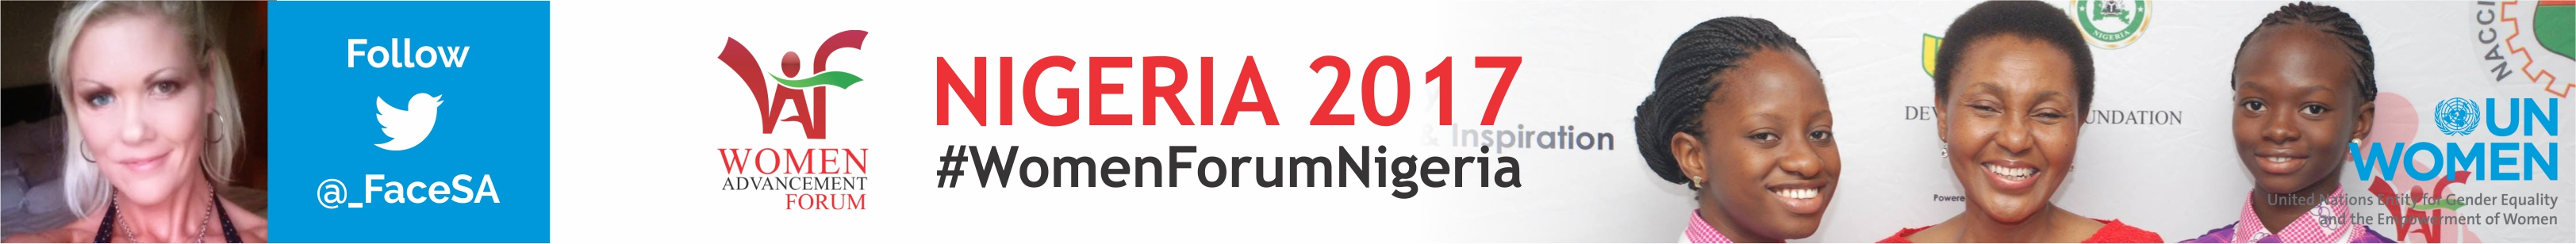 women-forum-nigeria